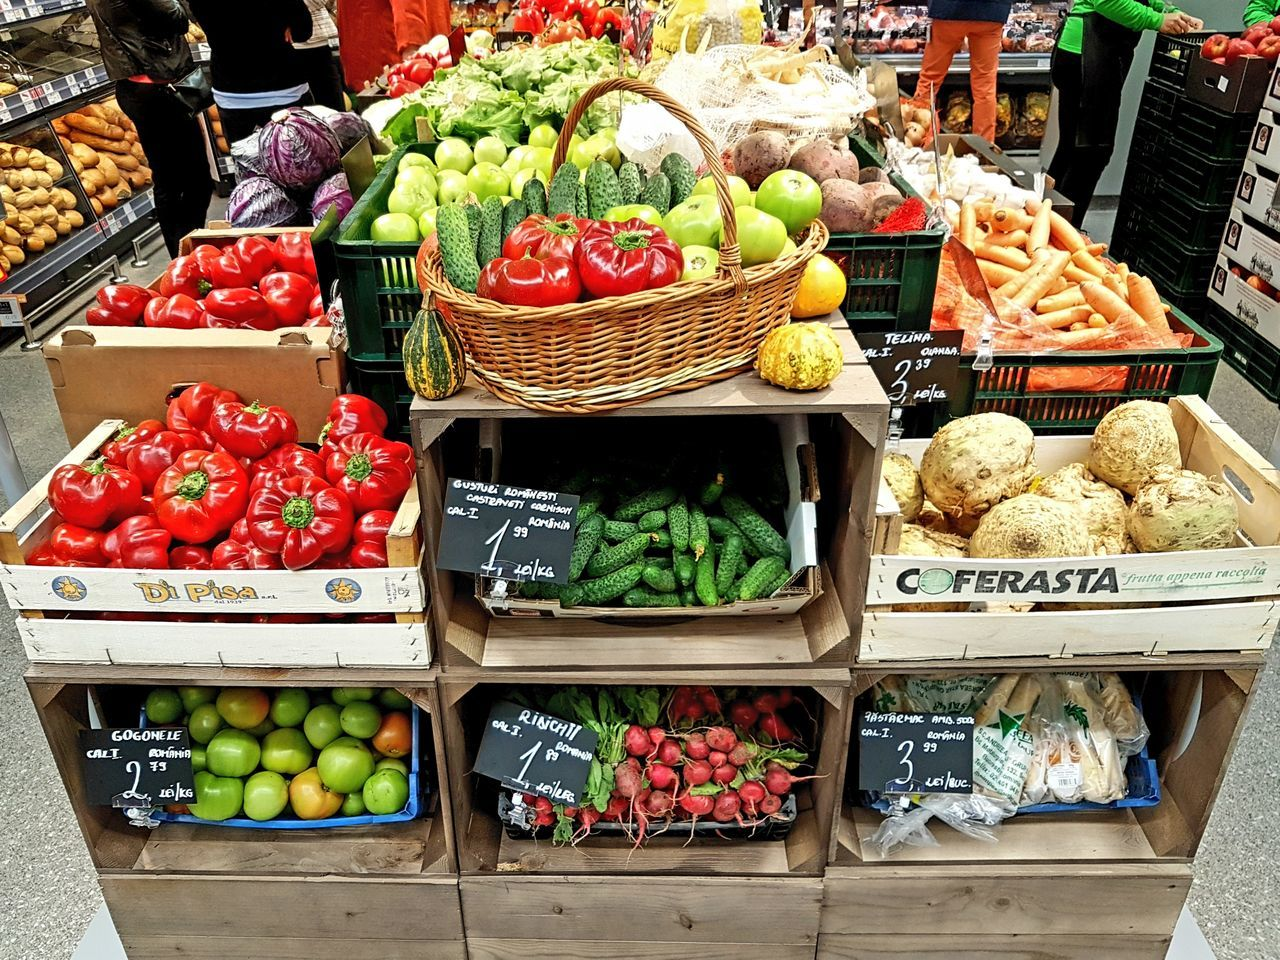 Freshness Food Large Group Of Objects Choice Variation Food And Drink Market For Sale Retail  Abundance Vegetable Healthy Eating Arrangement Market Stall Fruit High Angle View Farmer Market Small Business Price Tag Red Bell Pepper